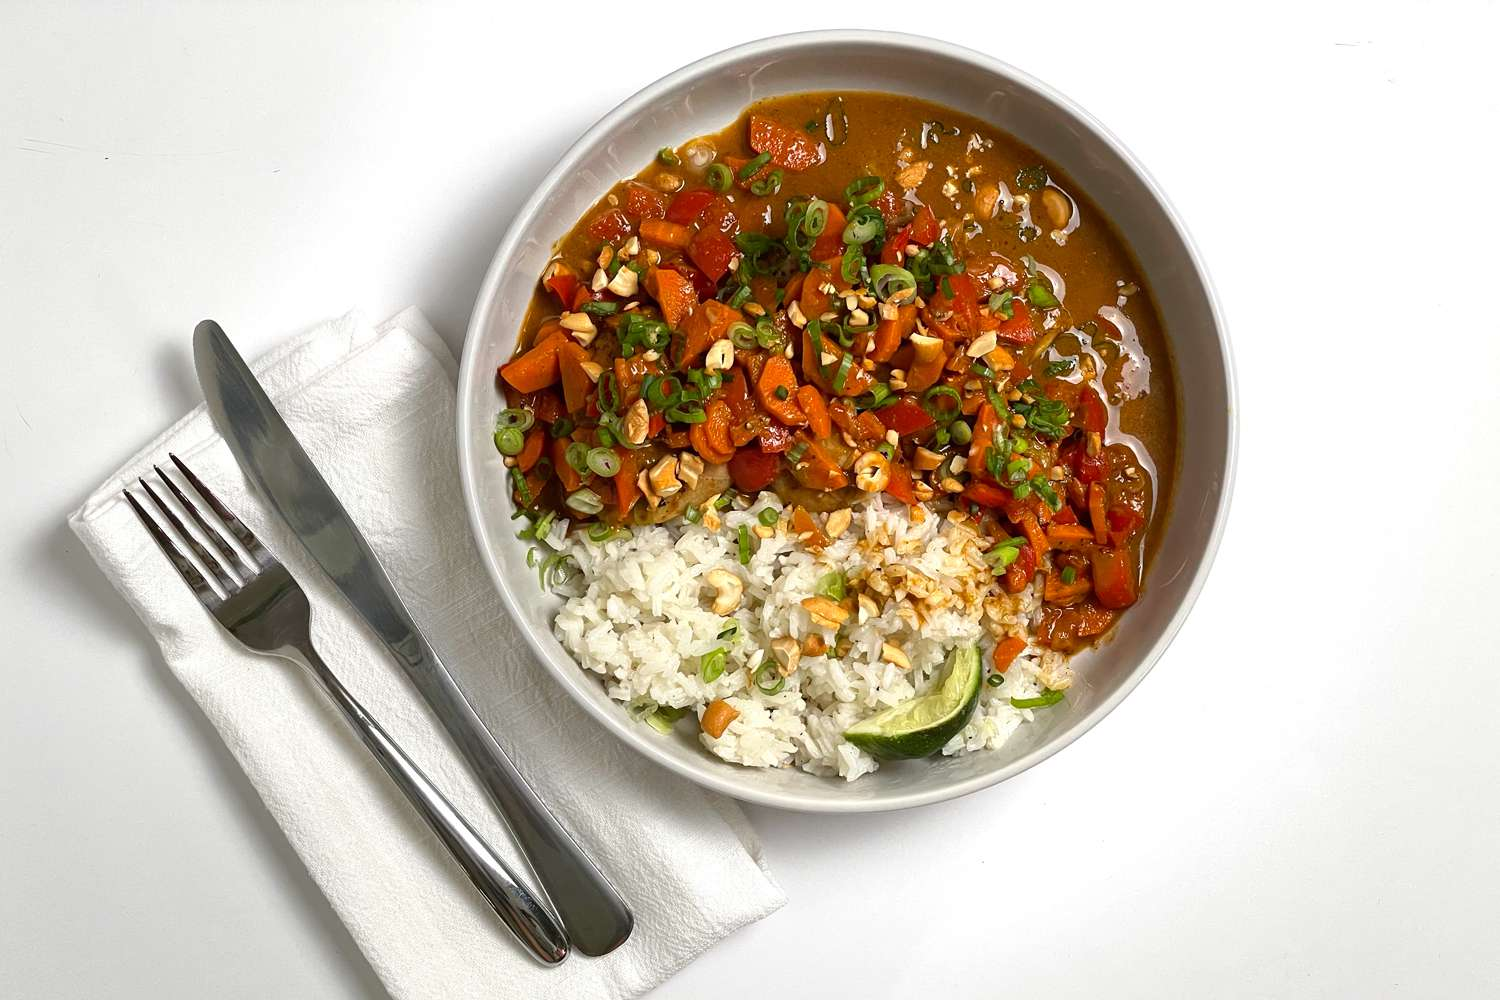 Blue Apron meal in white bowl